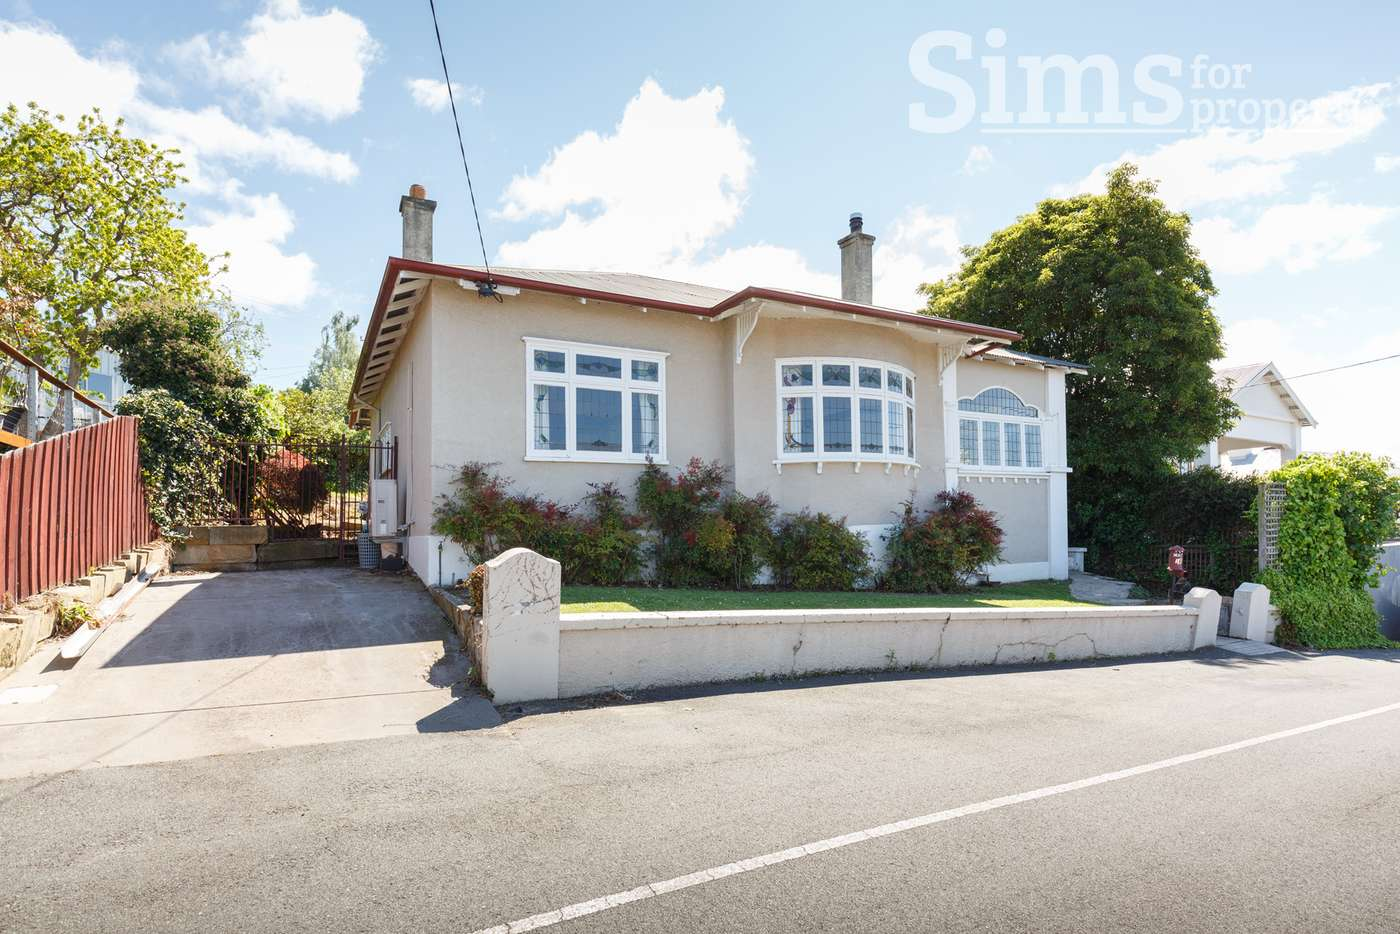 Main view of Homely house listing, 16 Hillside Crescent, West Launceston TAS 7250